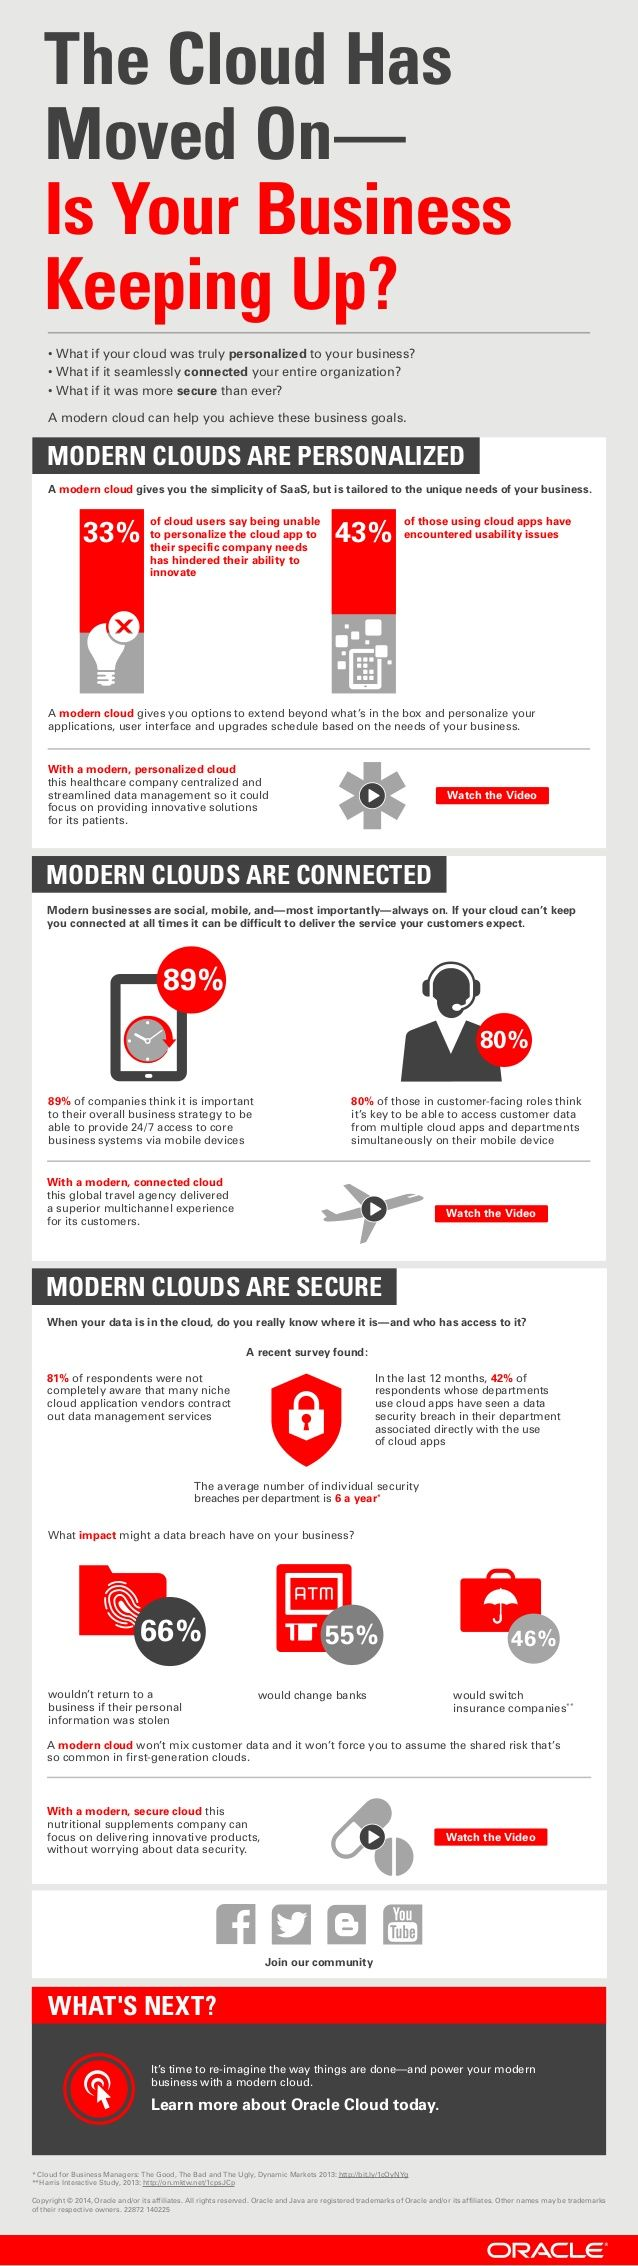 The Cloud Has Moved On. Is Your Business Keeping Up?